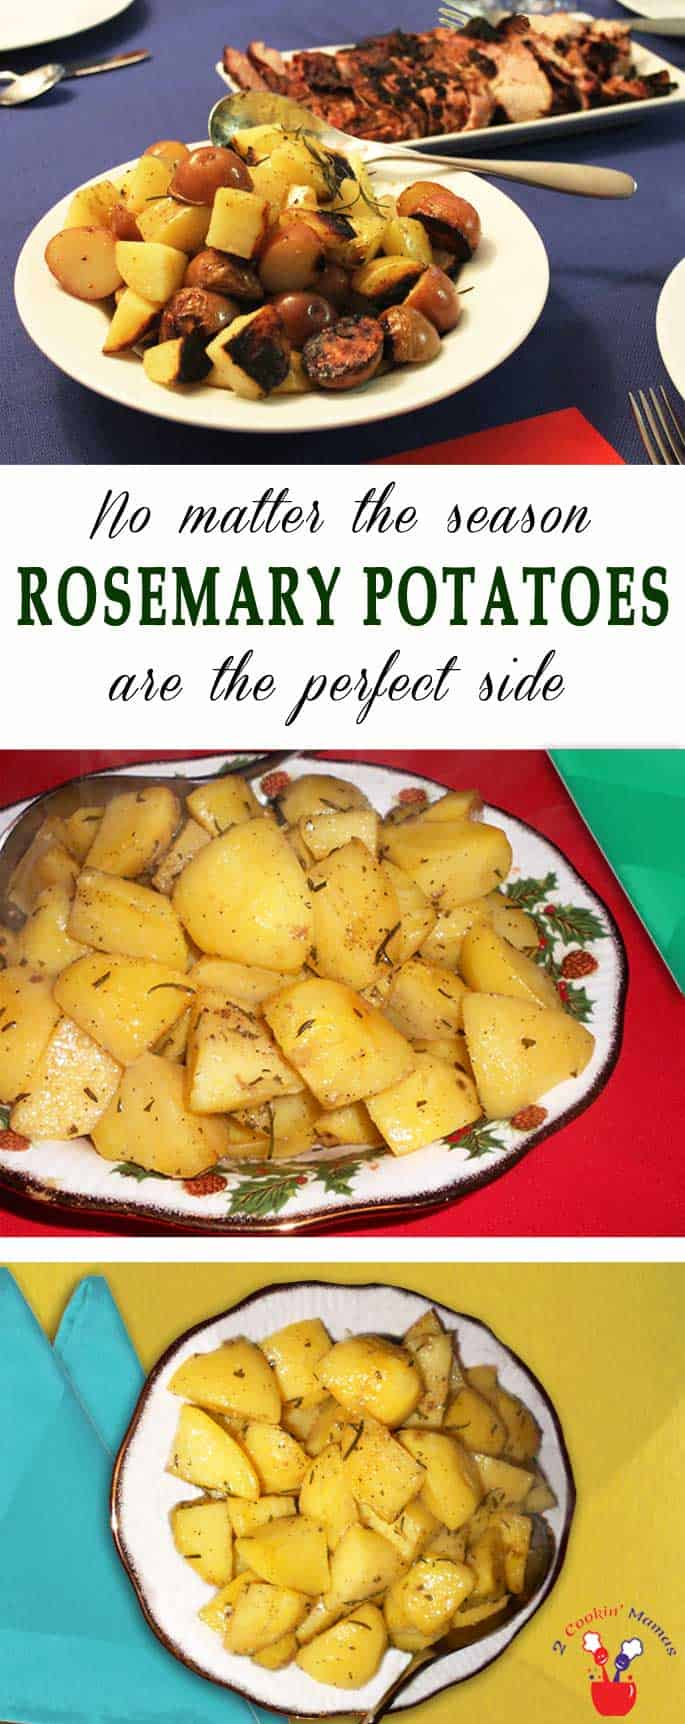 Easy Rosemary Potatoes are tossed with rosemary, garlic & olive oil then roasted to crisp perfection. A healthy & delicious side for any time of year. #potatoes #roastedpotatoes #rosemarypotatoes #sidedish